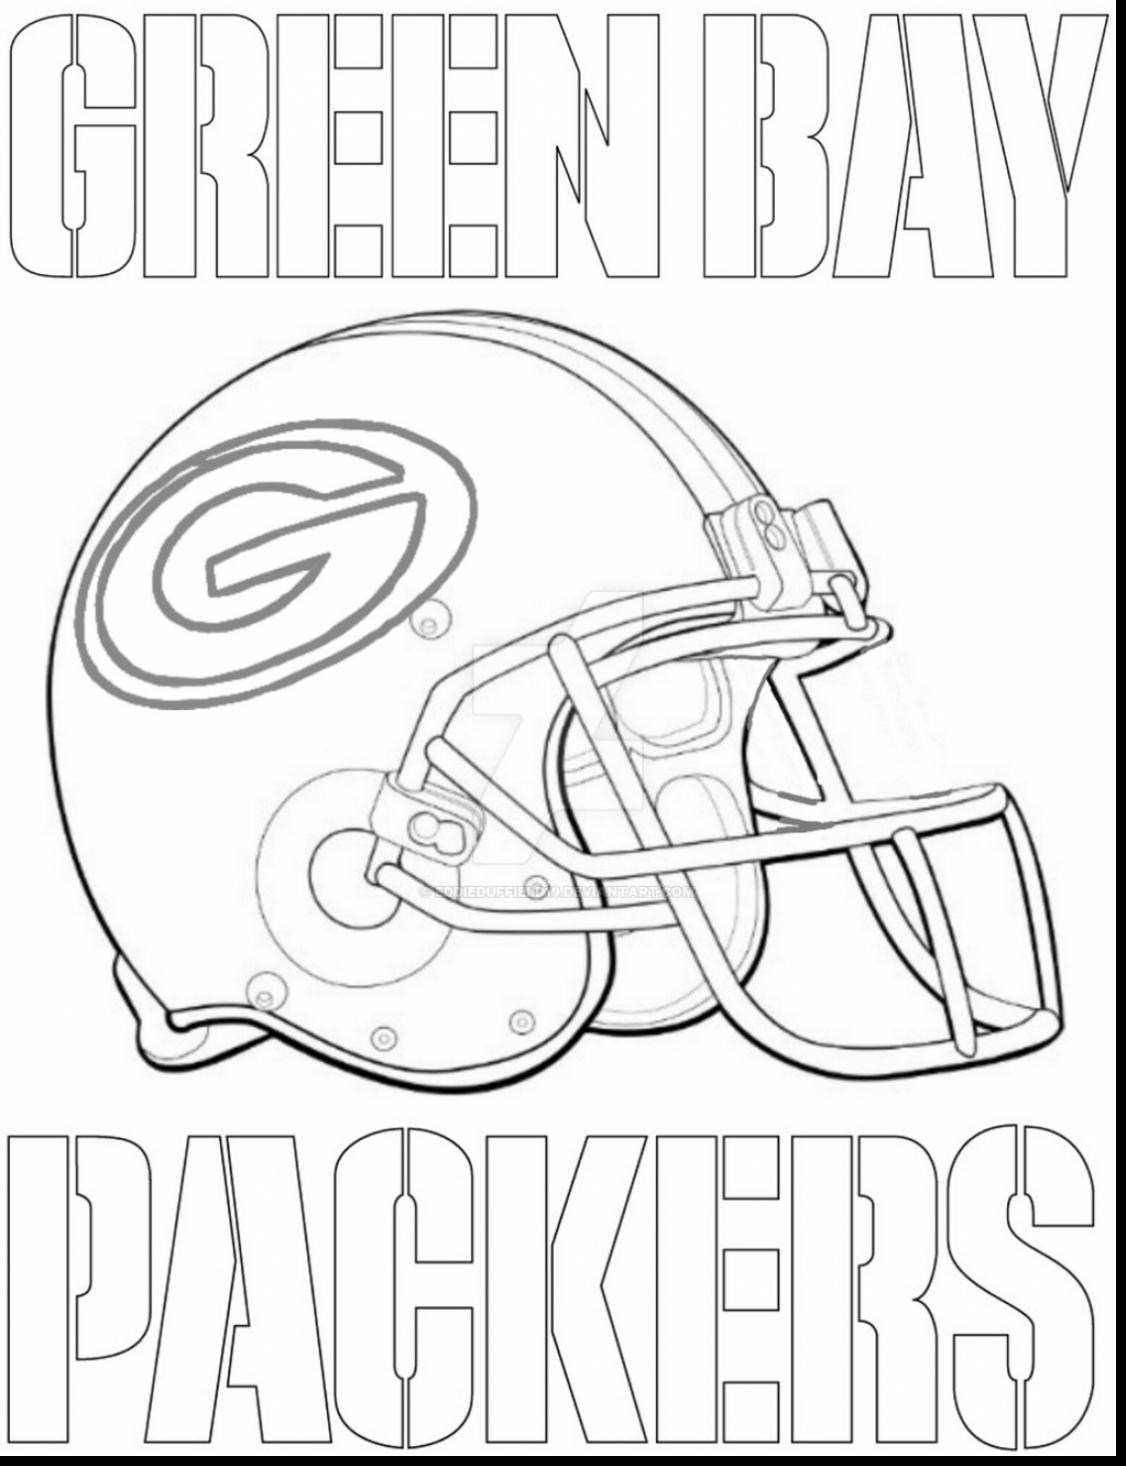 seahawks coloring pages seattle seahawks logo drawing at paintingvalleycom pages coloring seahawks